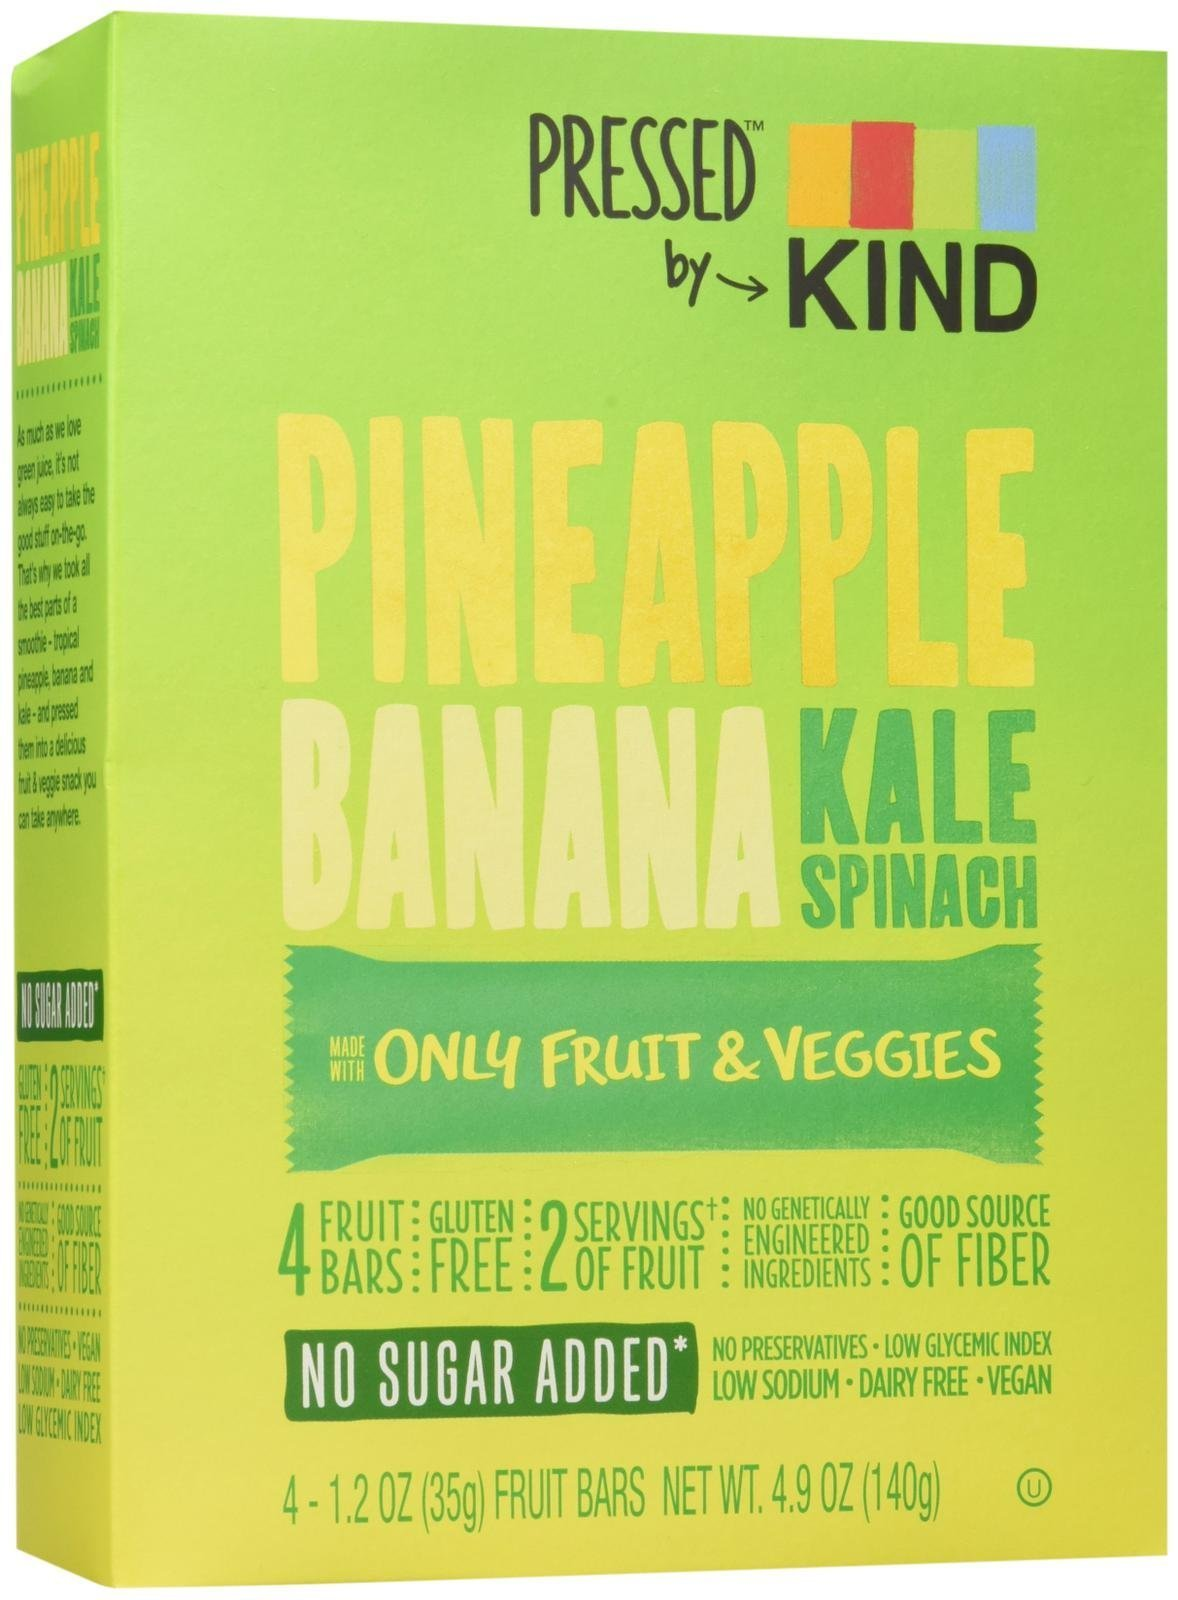 KIND Pressed by Bars - Pineapple Banana Kale Spinach, 1.2 Oz, 4 Ct, Net Wt. 4.9oz (140g)